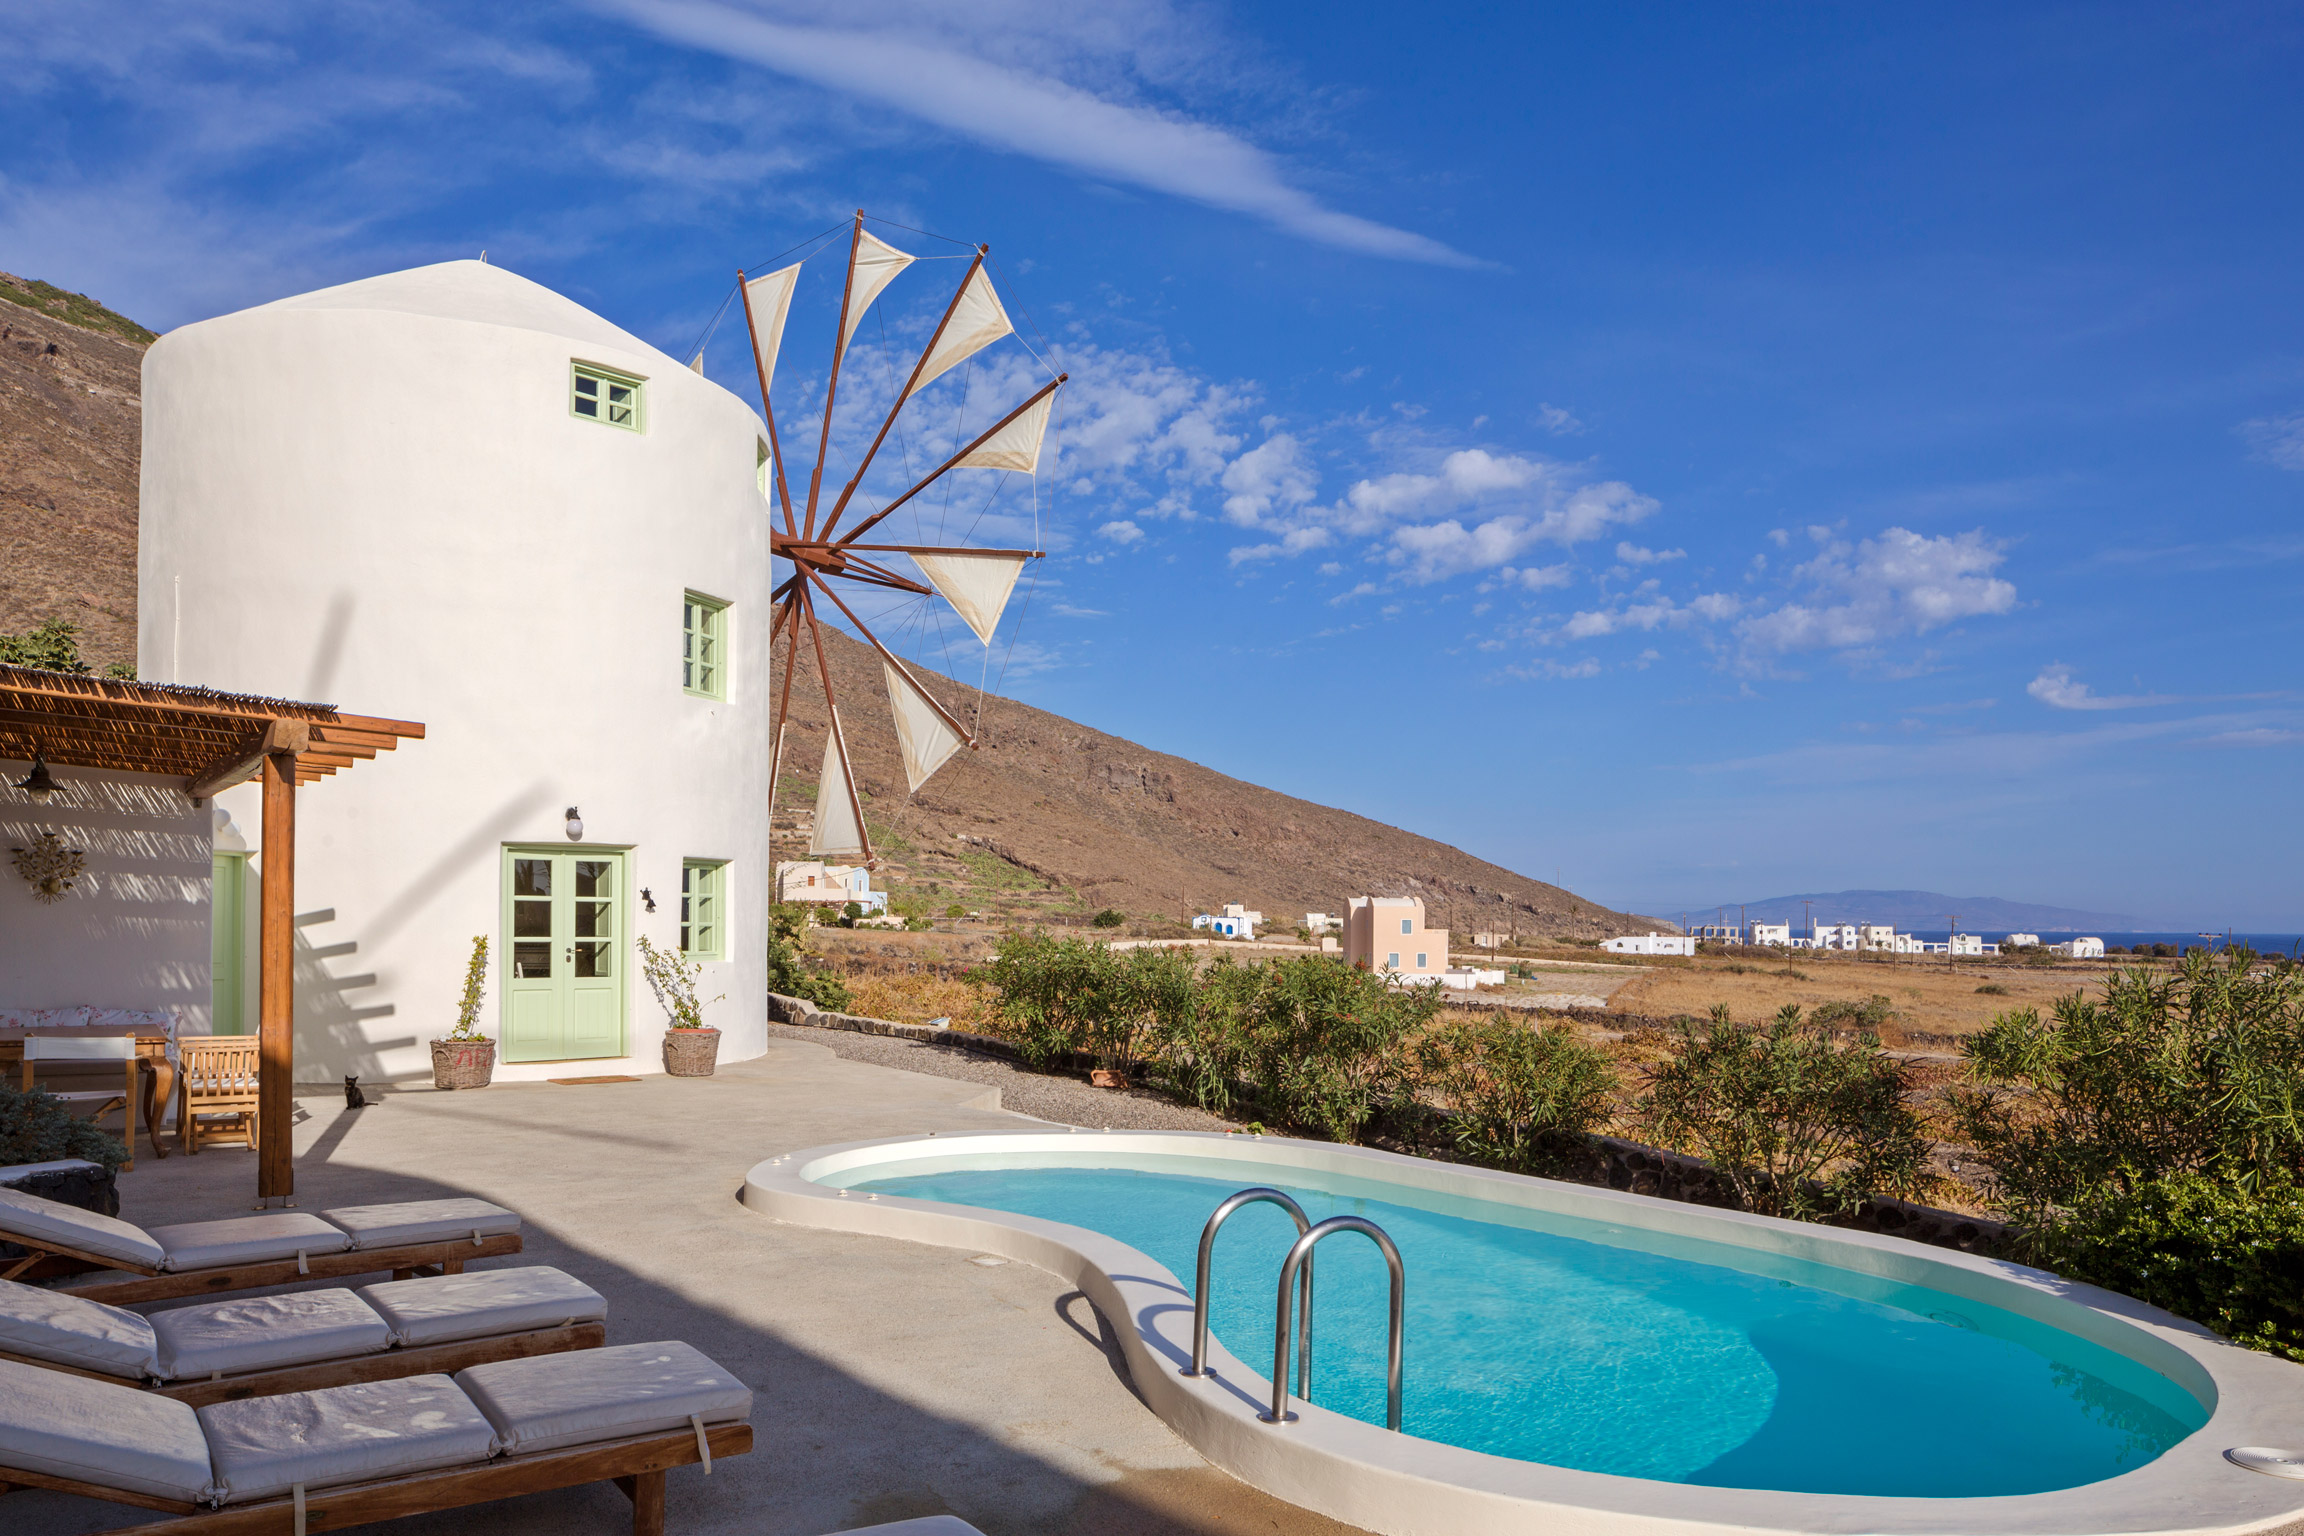 Location vacances villa moulin typique de santorin avec for Piscine de moulins